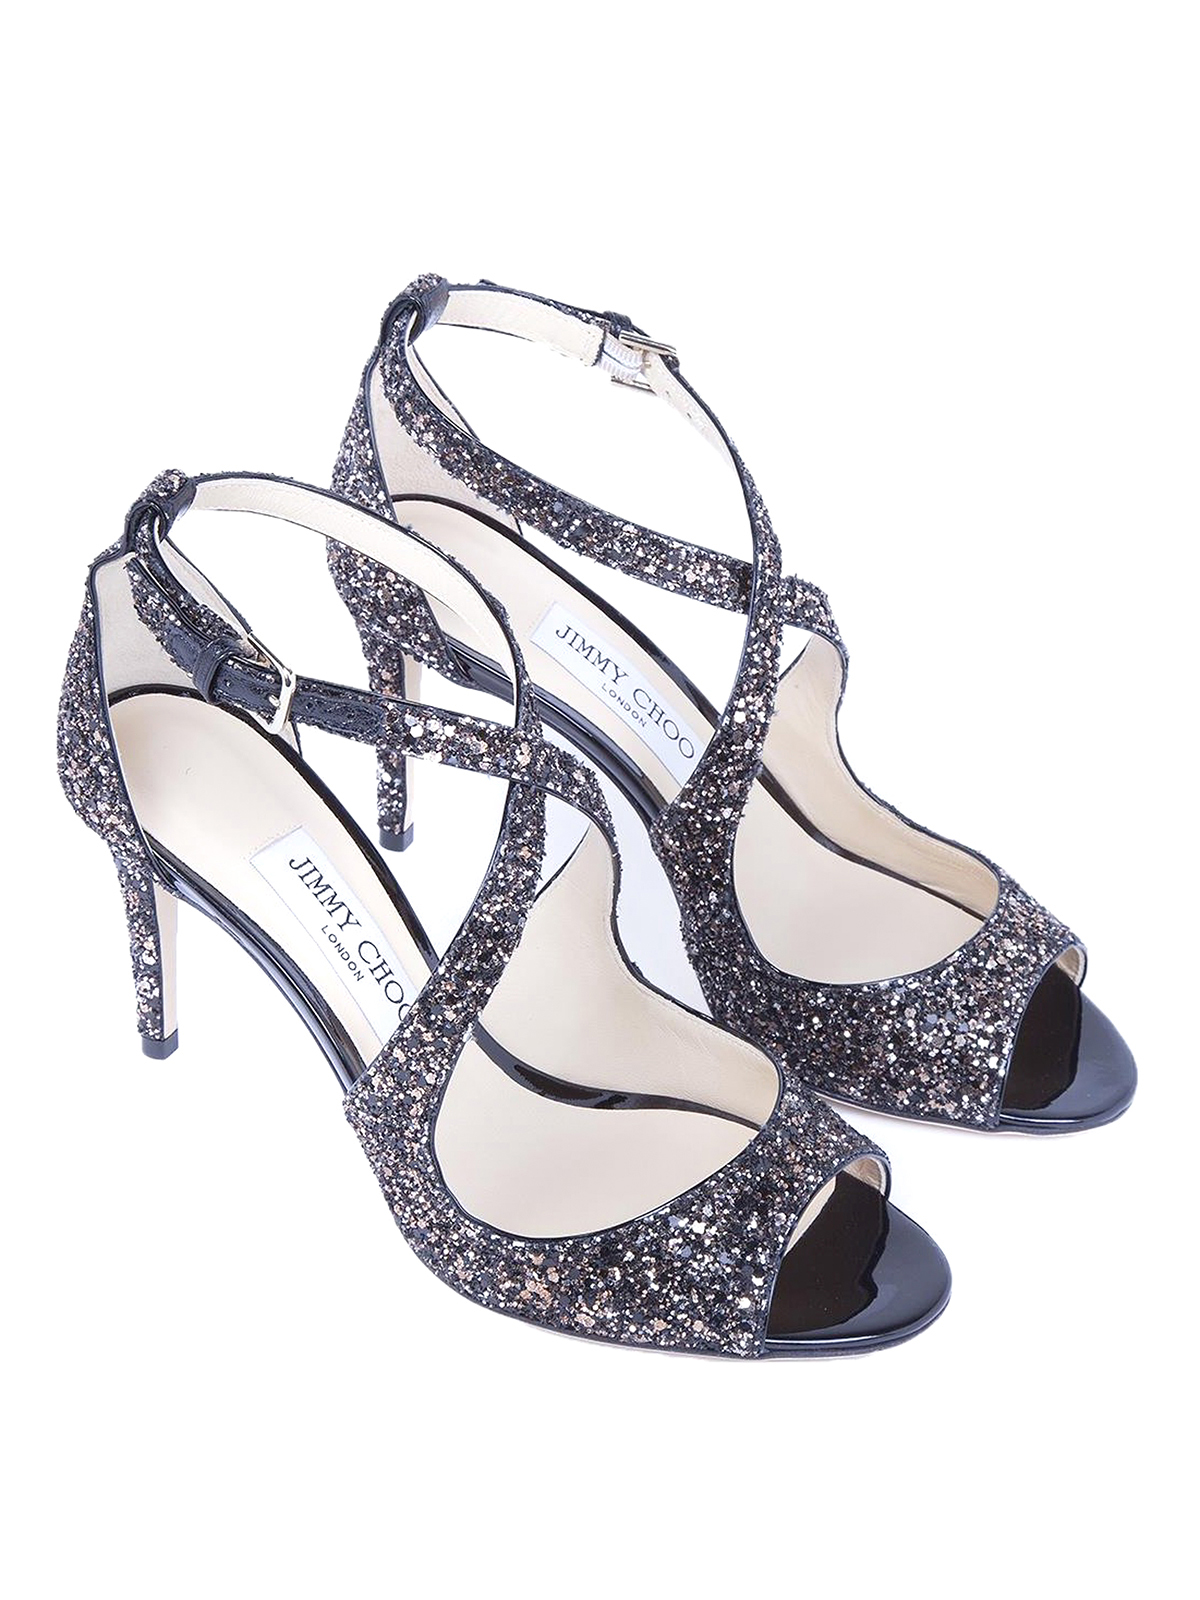 57bb9af6d01e6 JIMMY CHOO  sandals online - Emily 85 glitter peep-toe sandals